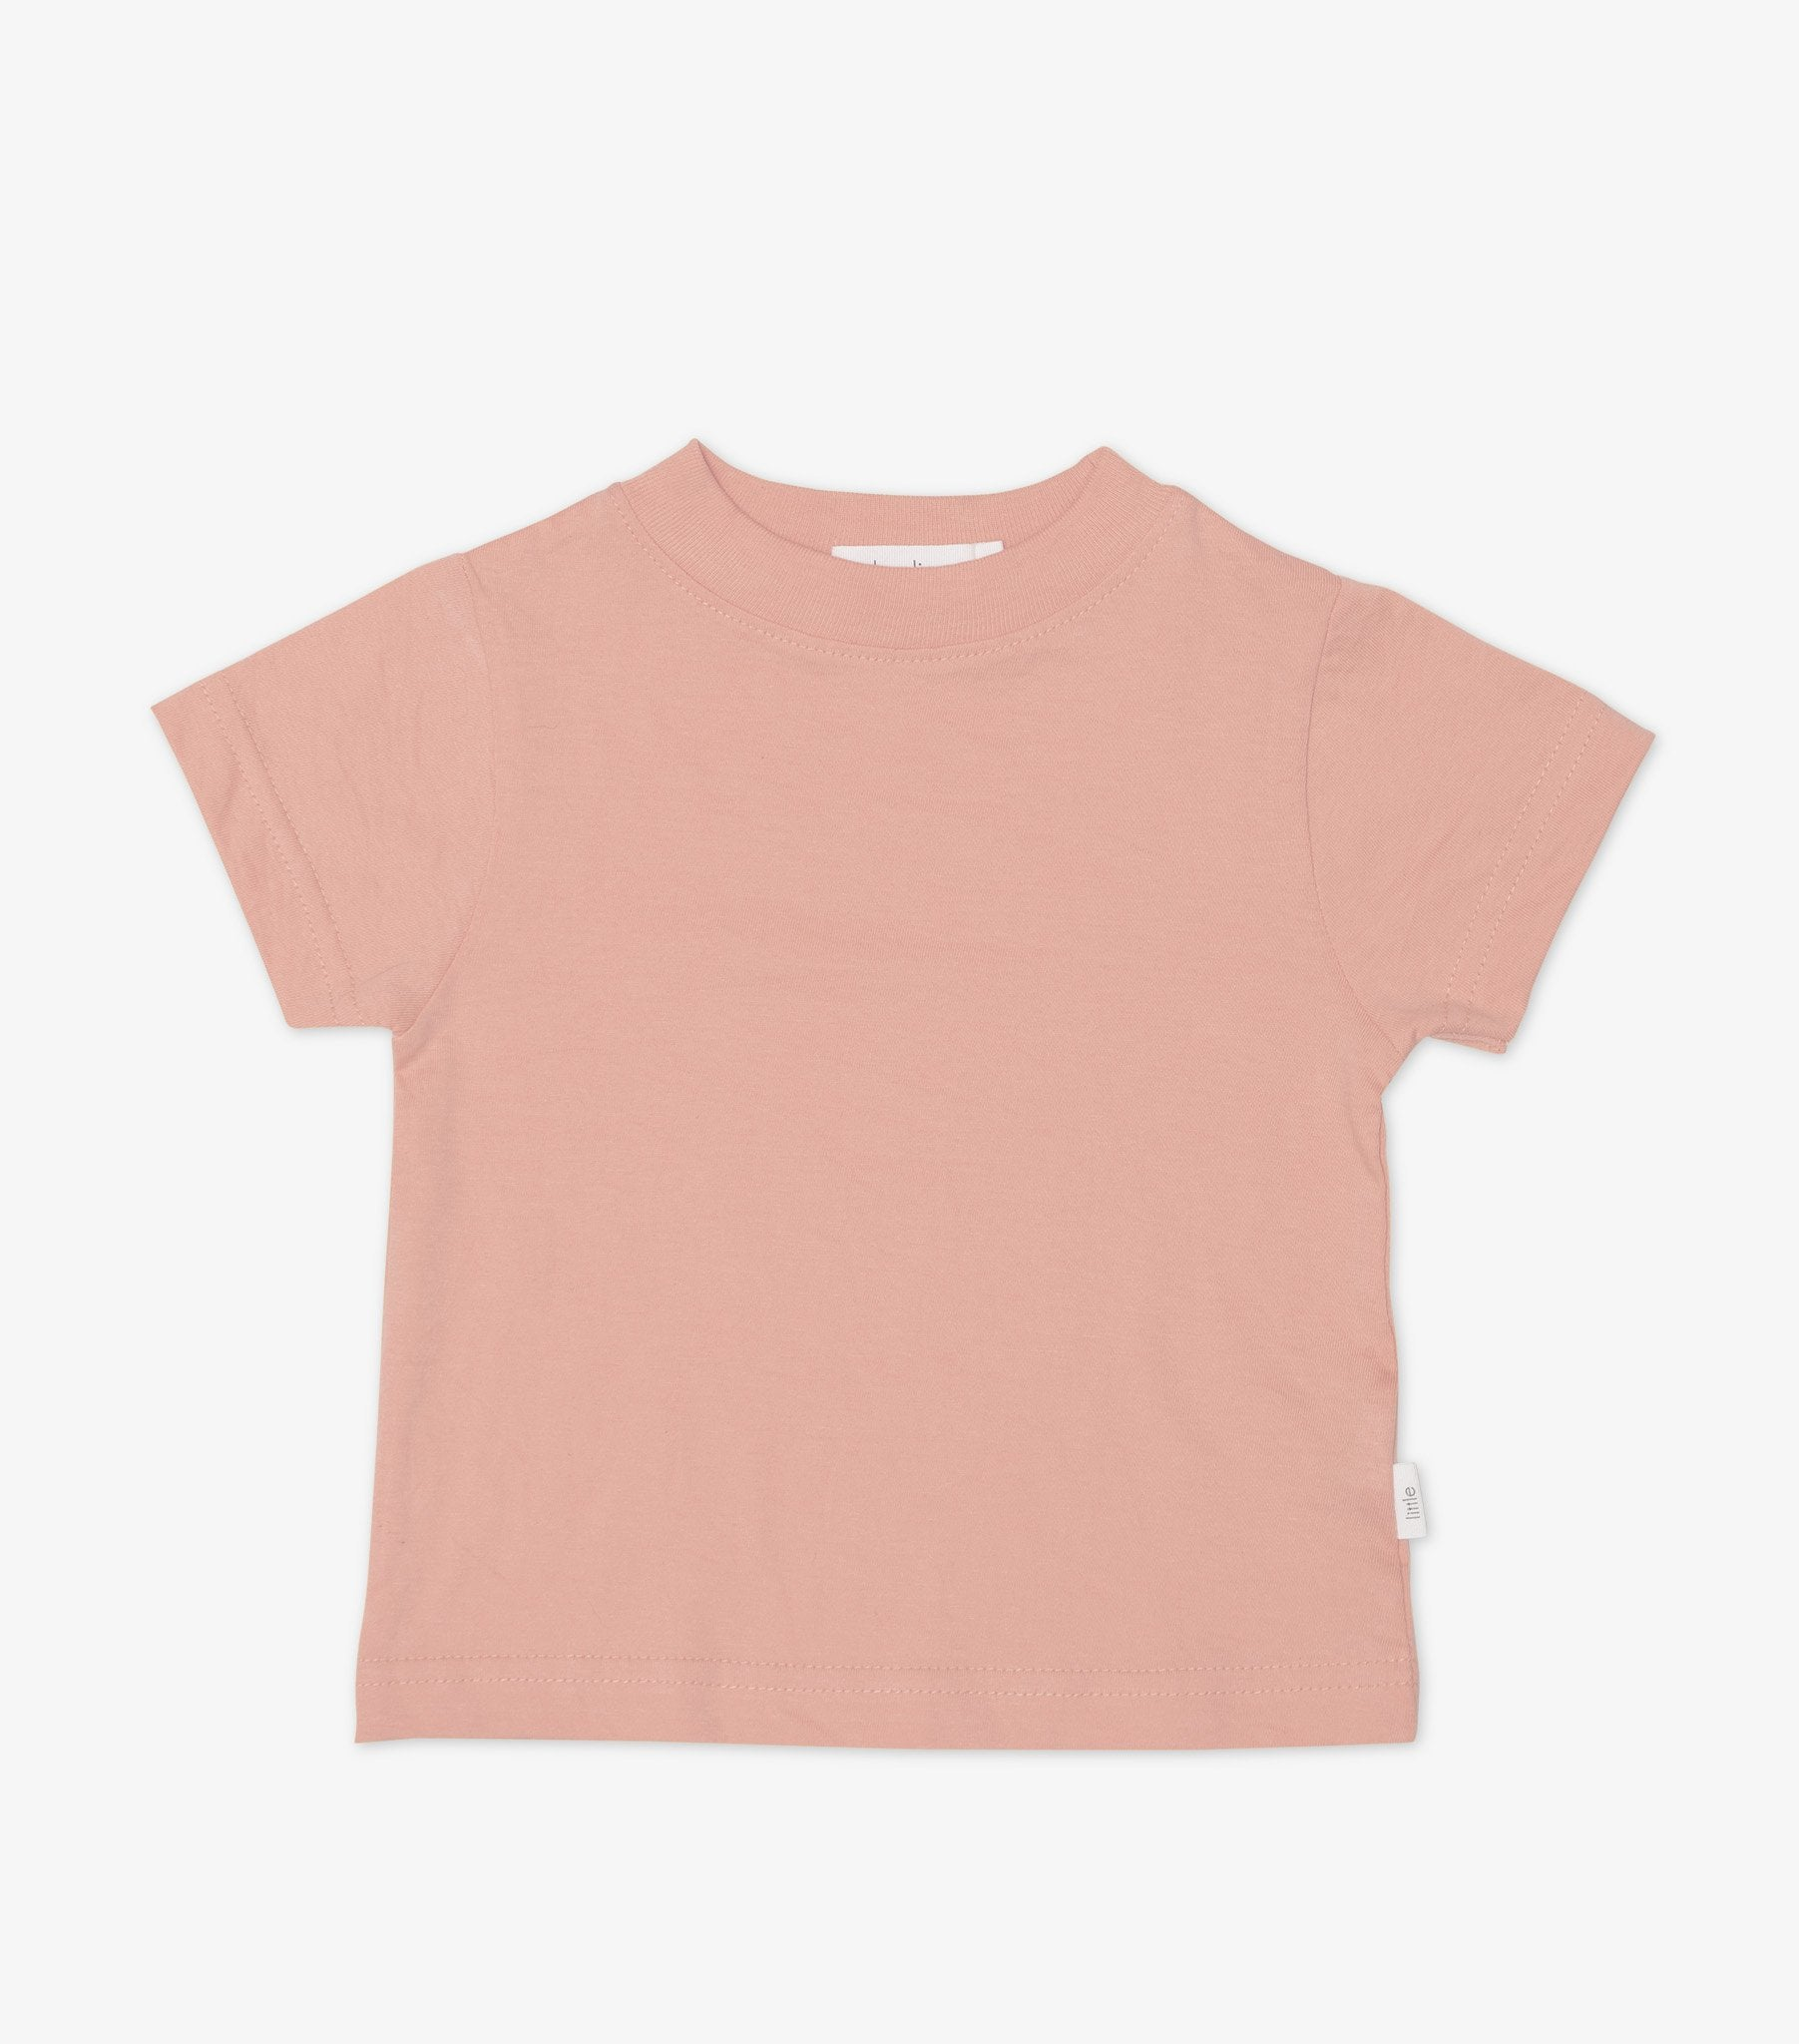 3 Pack of Baby Tees